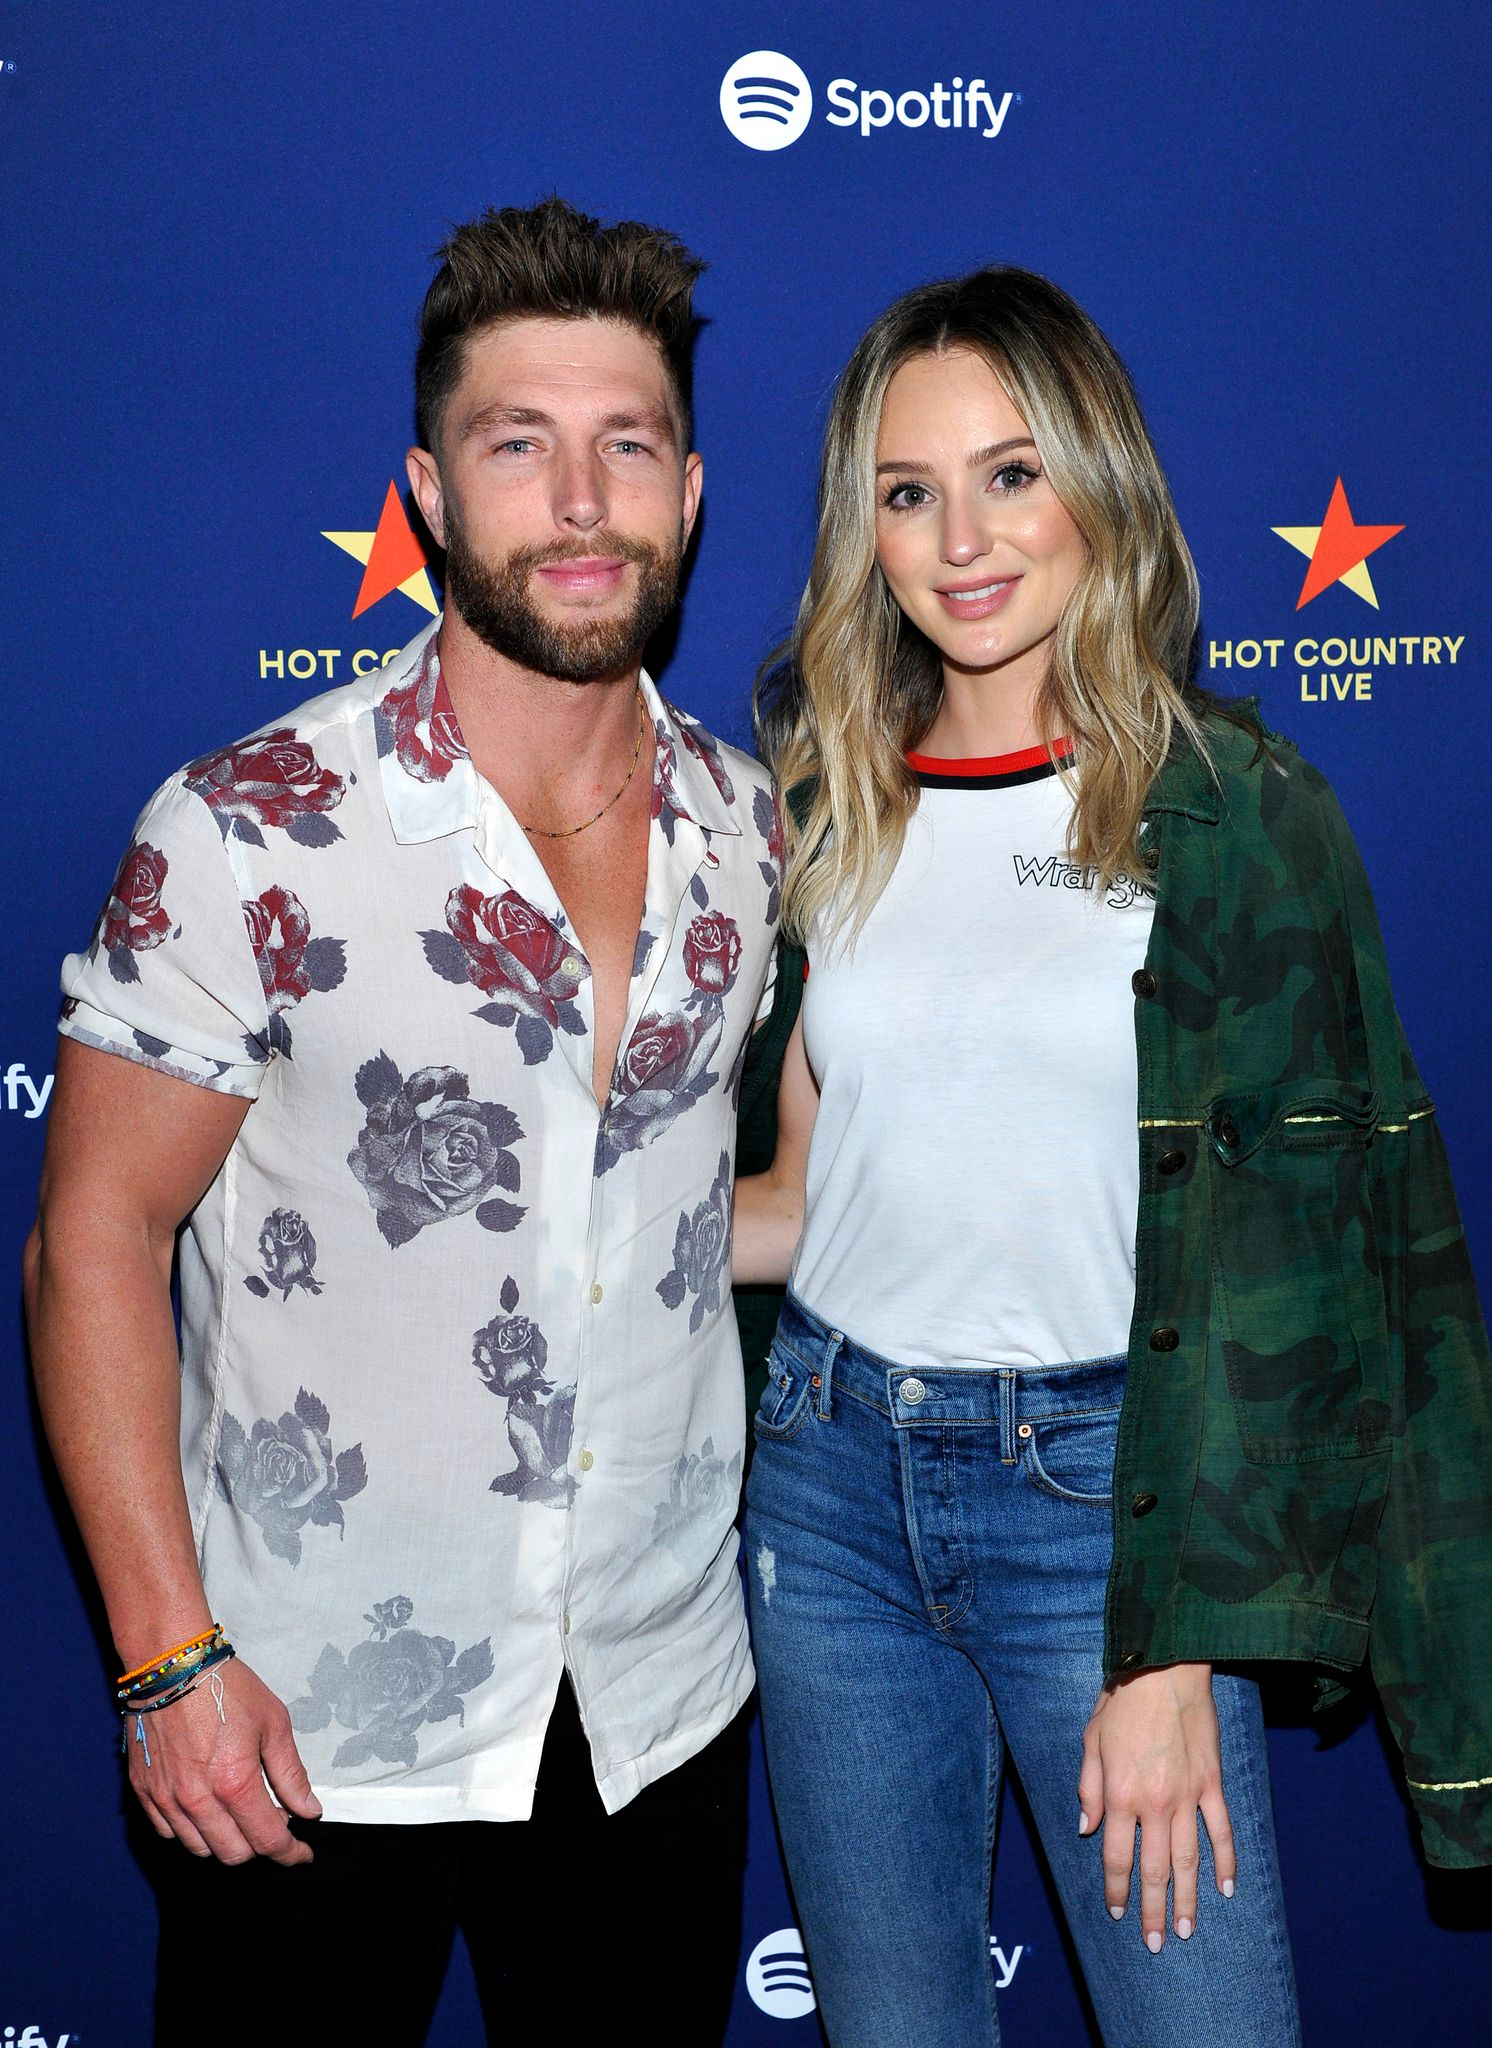 Chris Lane and Lauren Bushnell at Spotify's Hot Country Live Presents Florida Georgia Line in February 2019 in Los Angeles, California   Source: Getty Images